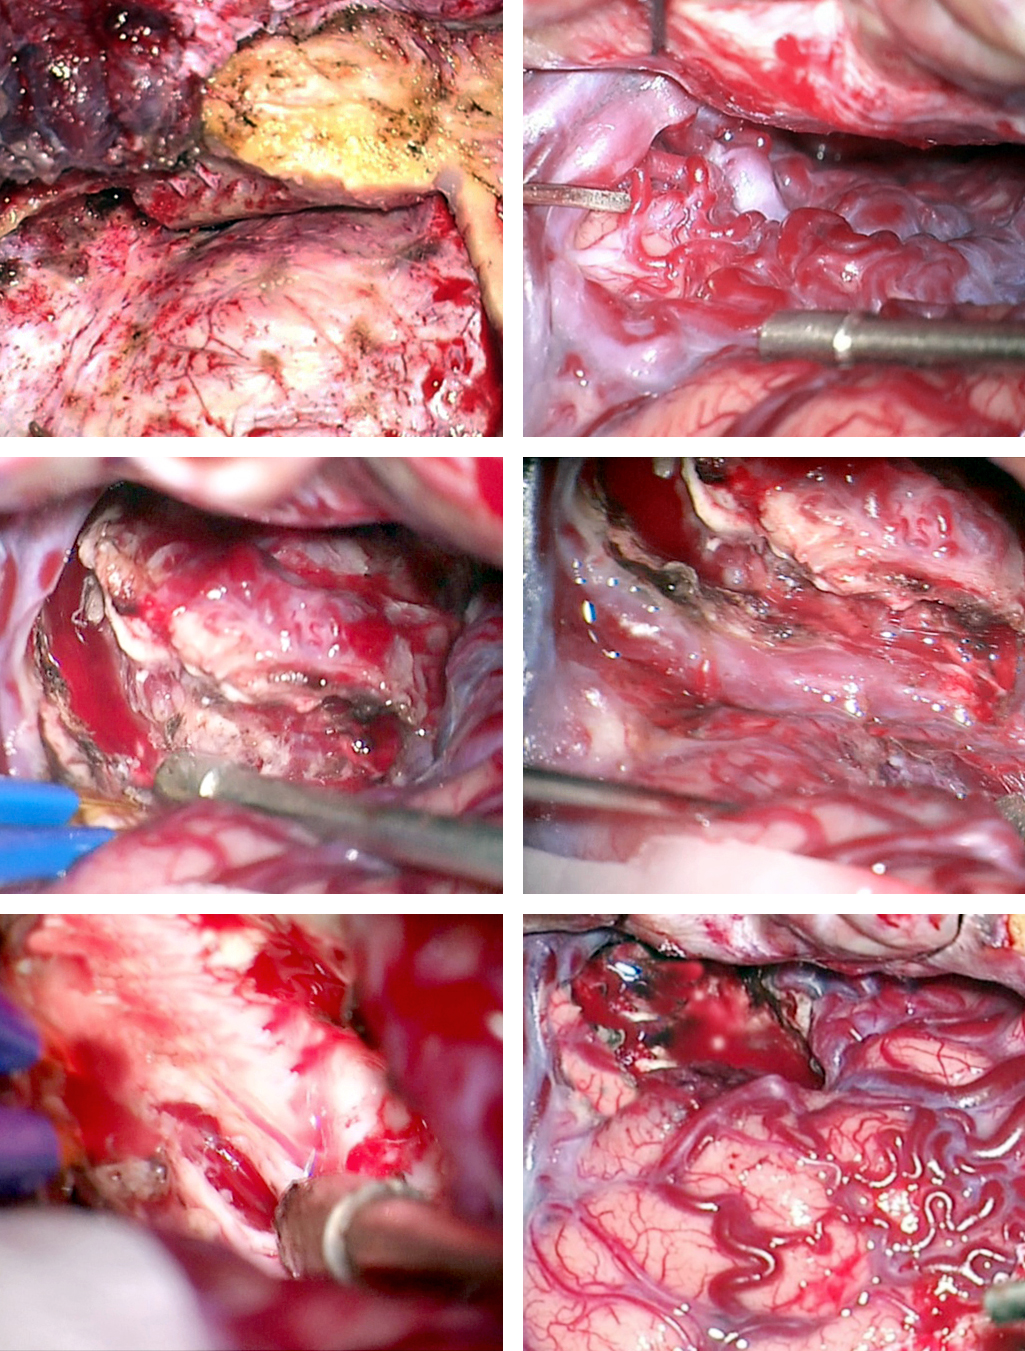 Figure 16: Intraoperative findings for another basal frontal AVM are included. Note the osteotomy over the orbital roof provided an adequate inferior-to-superior operative trajectory without excessive frontal lobe retraction. An orbitozygomatic craniotomy is rarely necessary. Subarachnoid dissection, anterior to the Sylvian fissure, allowed disconnection of predominant AVM feeders from the MCA (upper row). The nidus was skeletonized and the draining vein was preserved but mobilized to provide access to the deep portions of the AVM (middle row). Next, the deep white matter feeders were found and sacrificed. The AVM was removed and all the cortical veins were noted to turn dark blue (lower row).